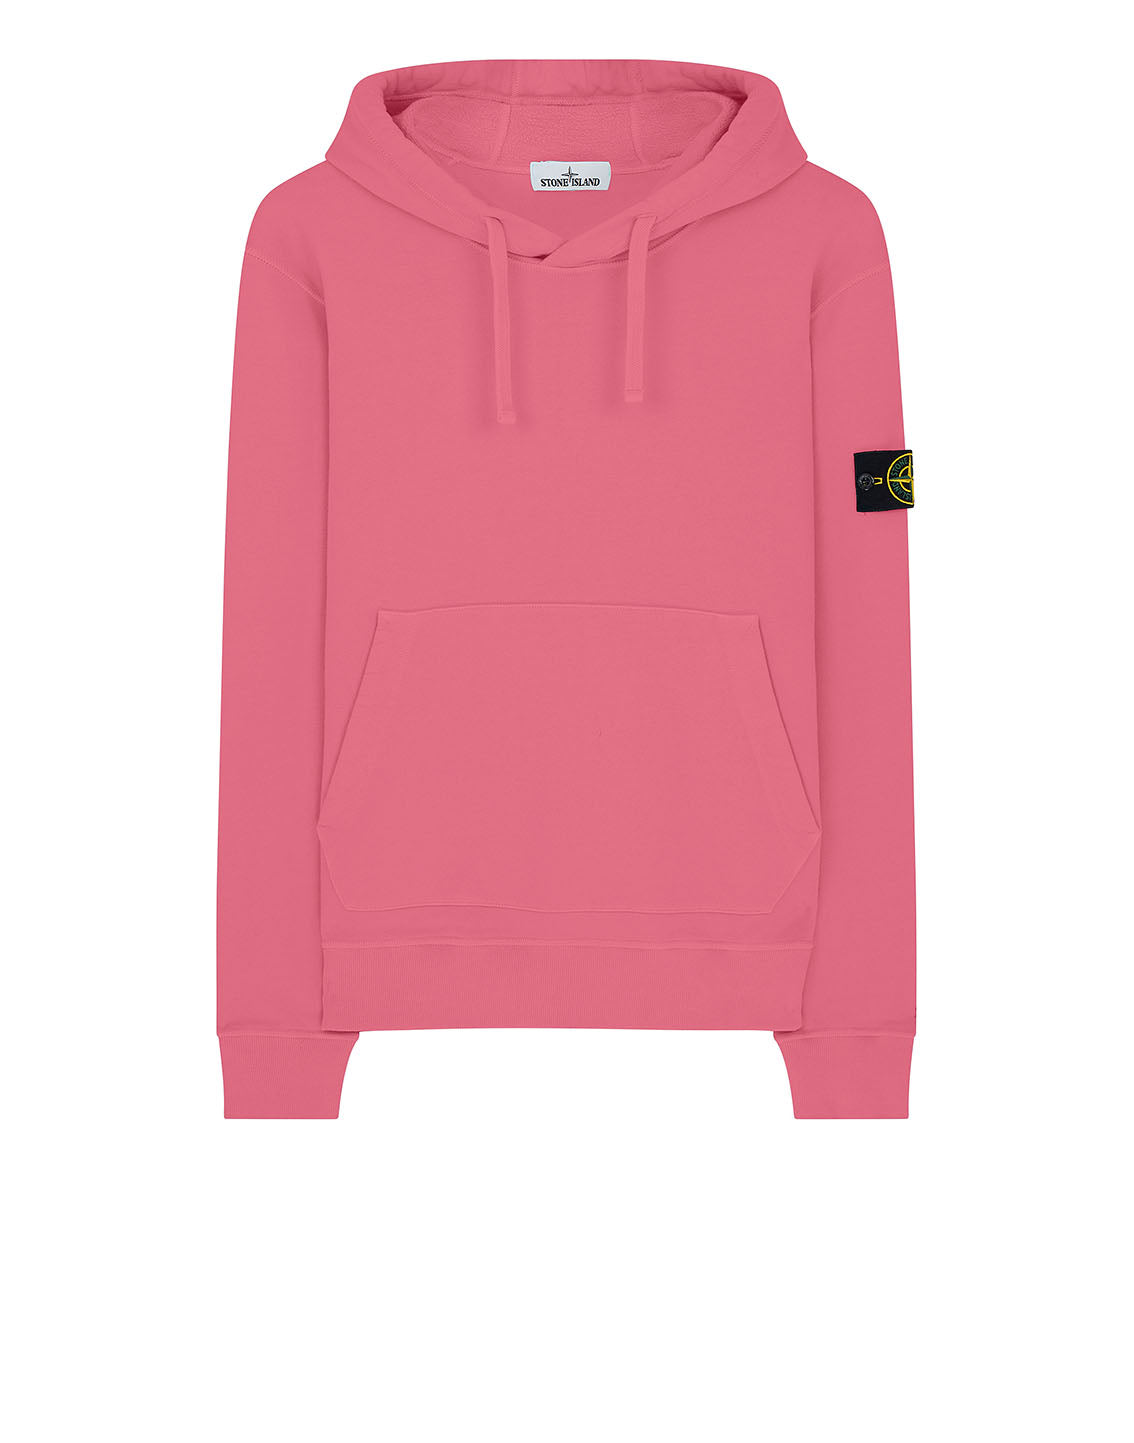 64120 Hooded Sweatshirt in Pink